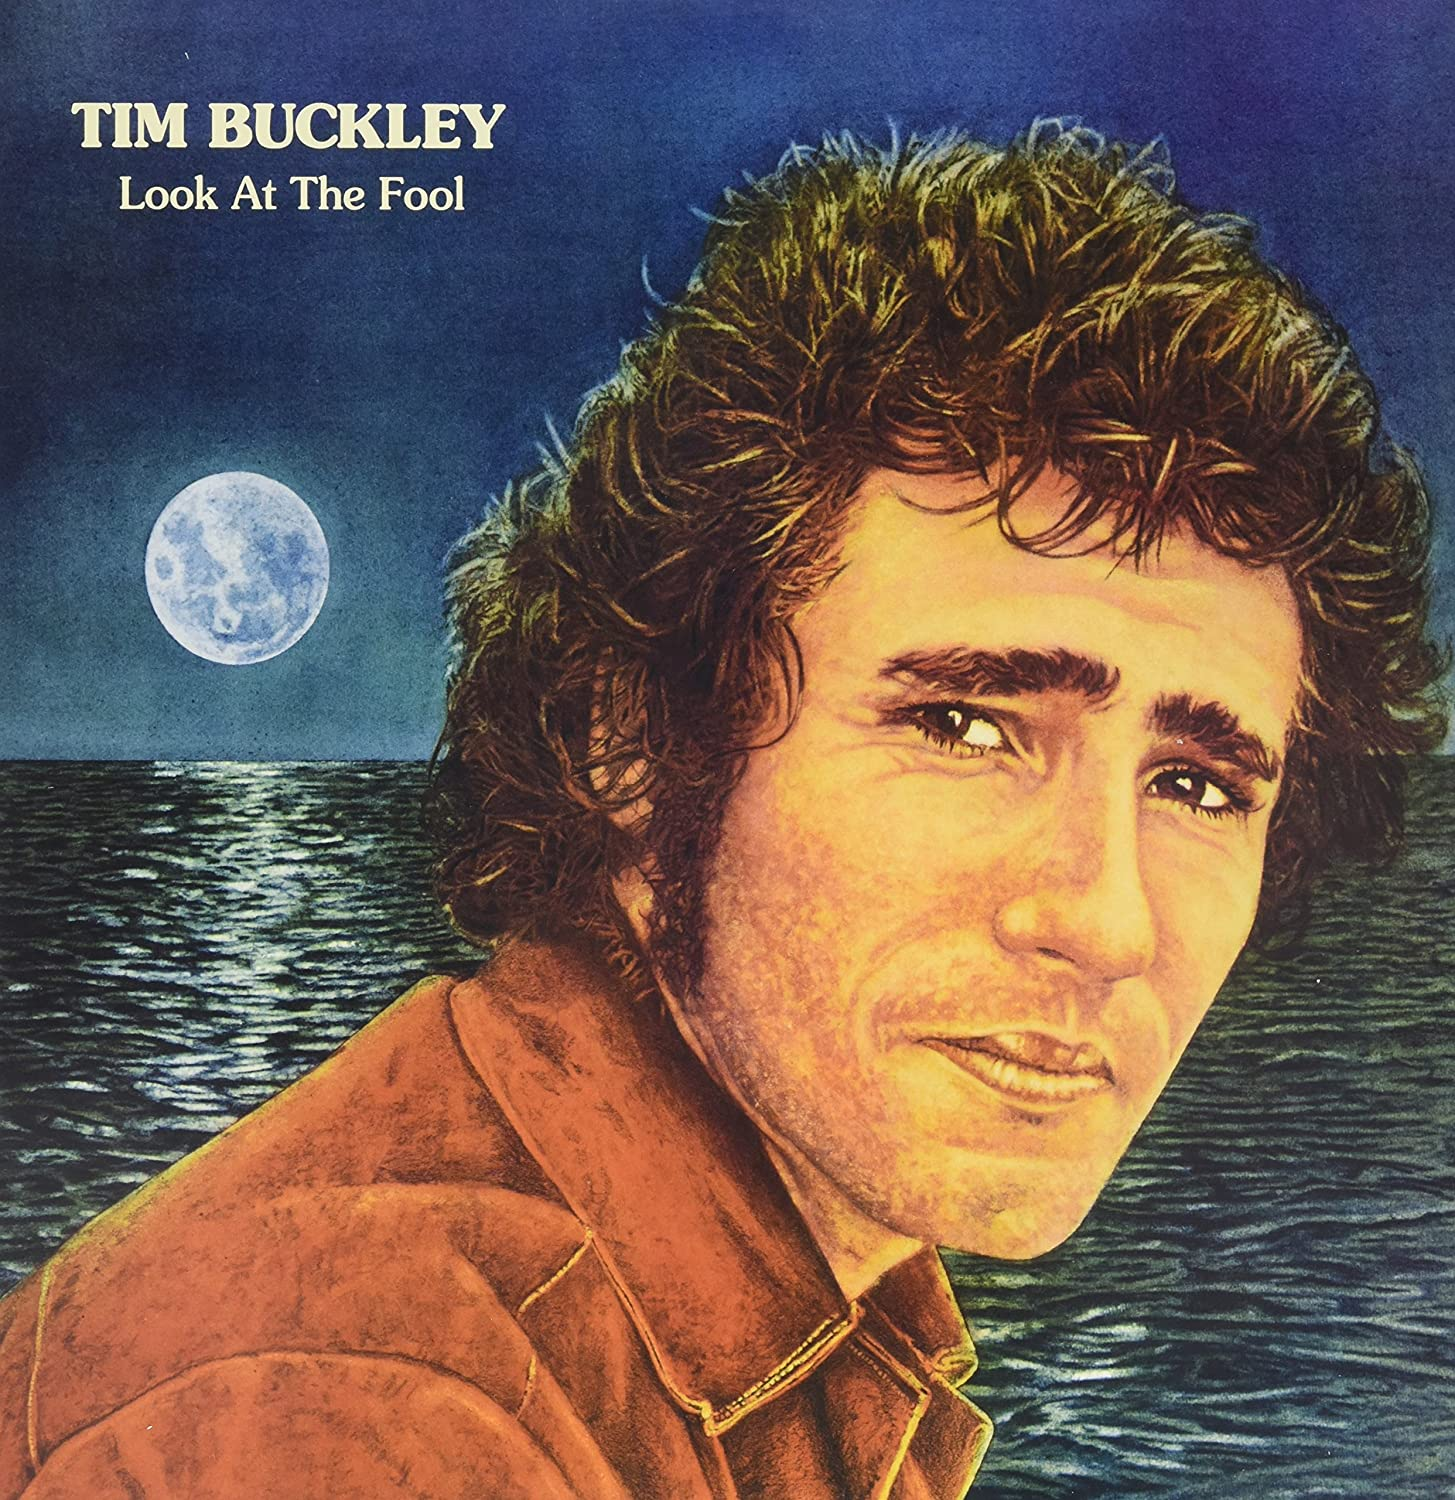 Tim Buckley - Look At The Fool Limited Edition 500 Made And Individually Numbered Blue Vinyl